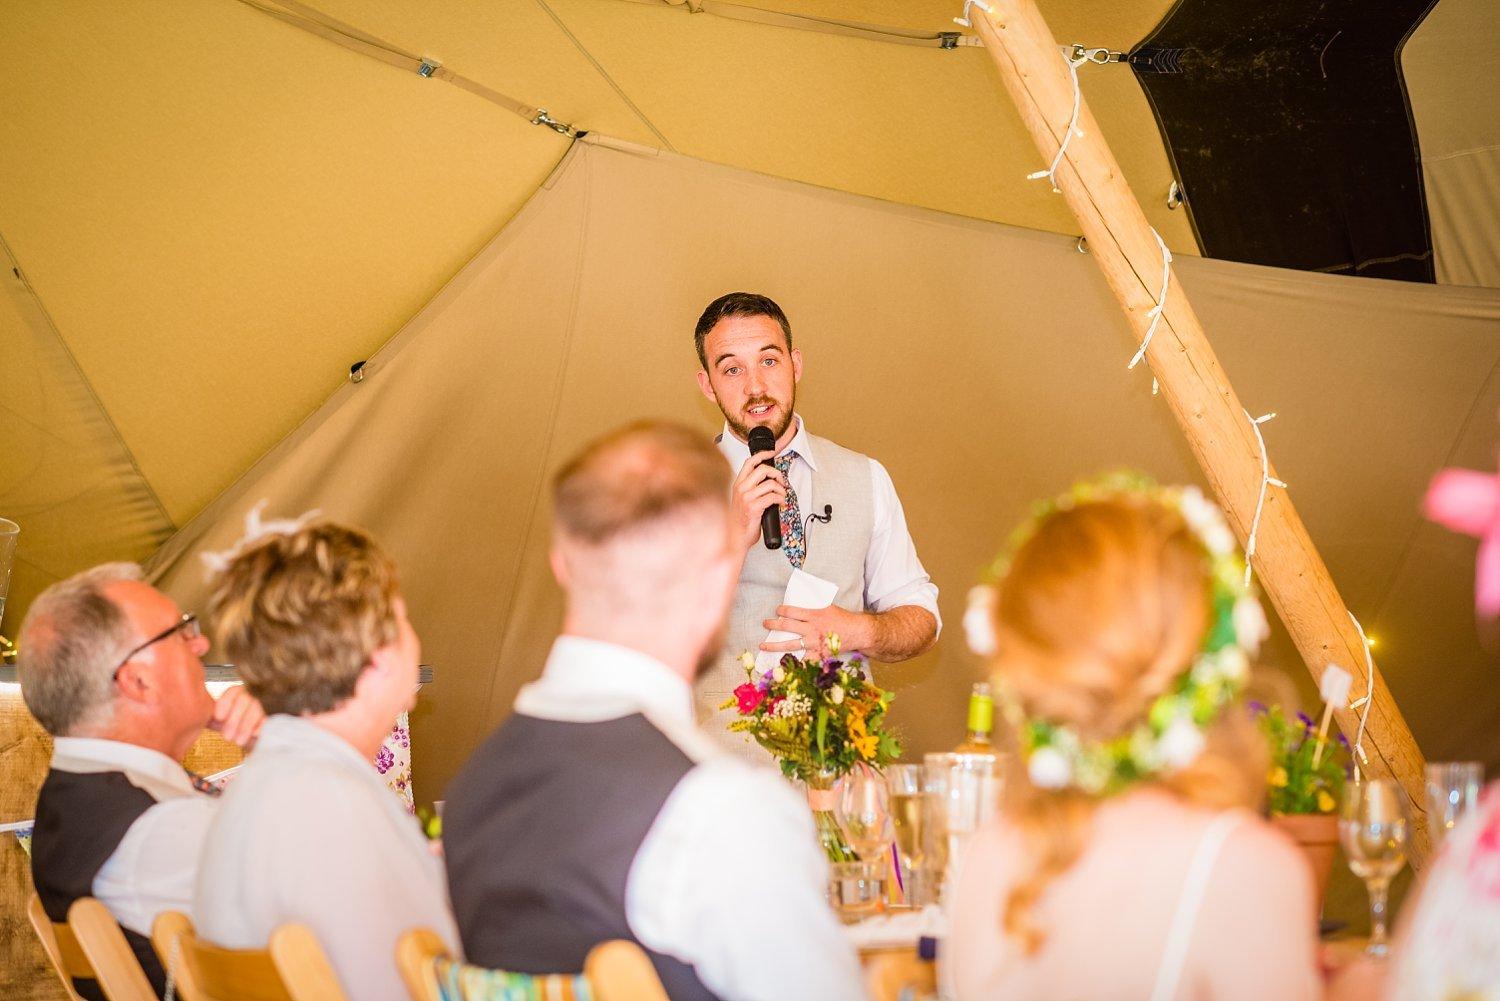 Farnham Wedding Photographer - best man's speech, he's looking at bride and groom